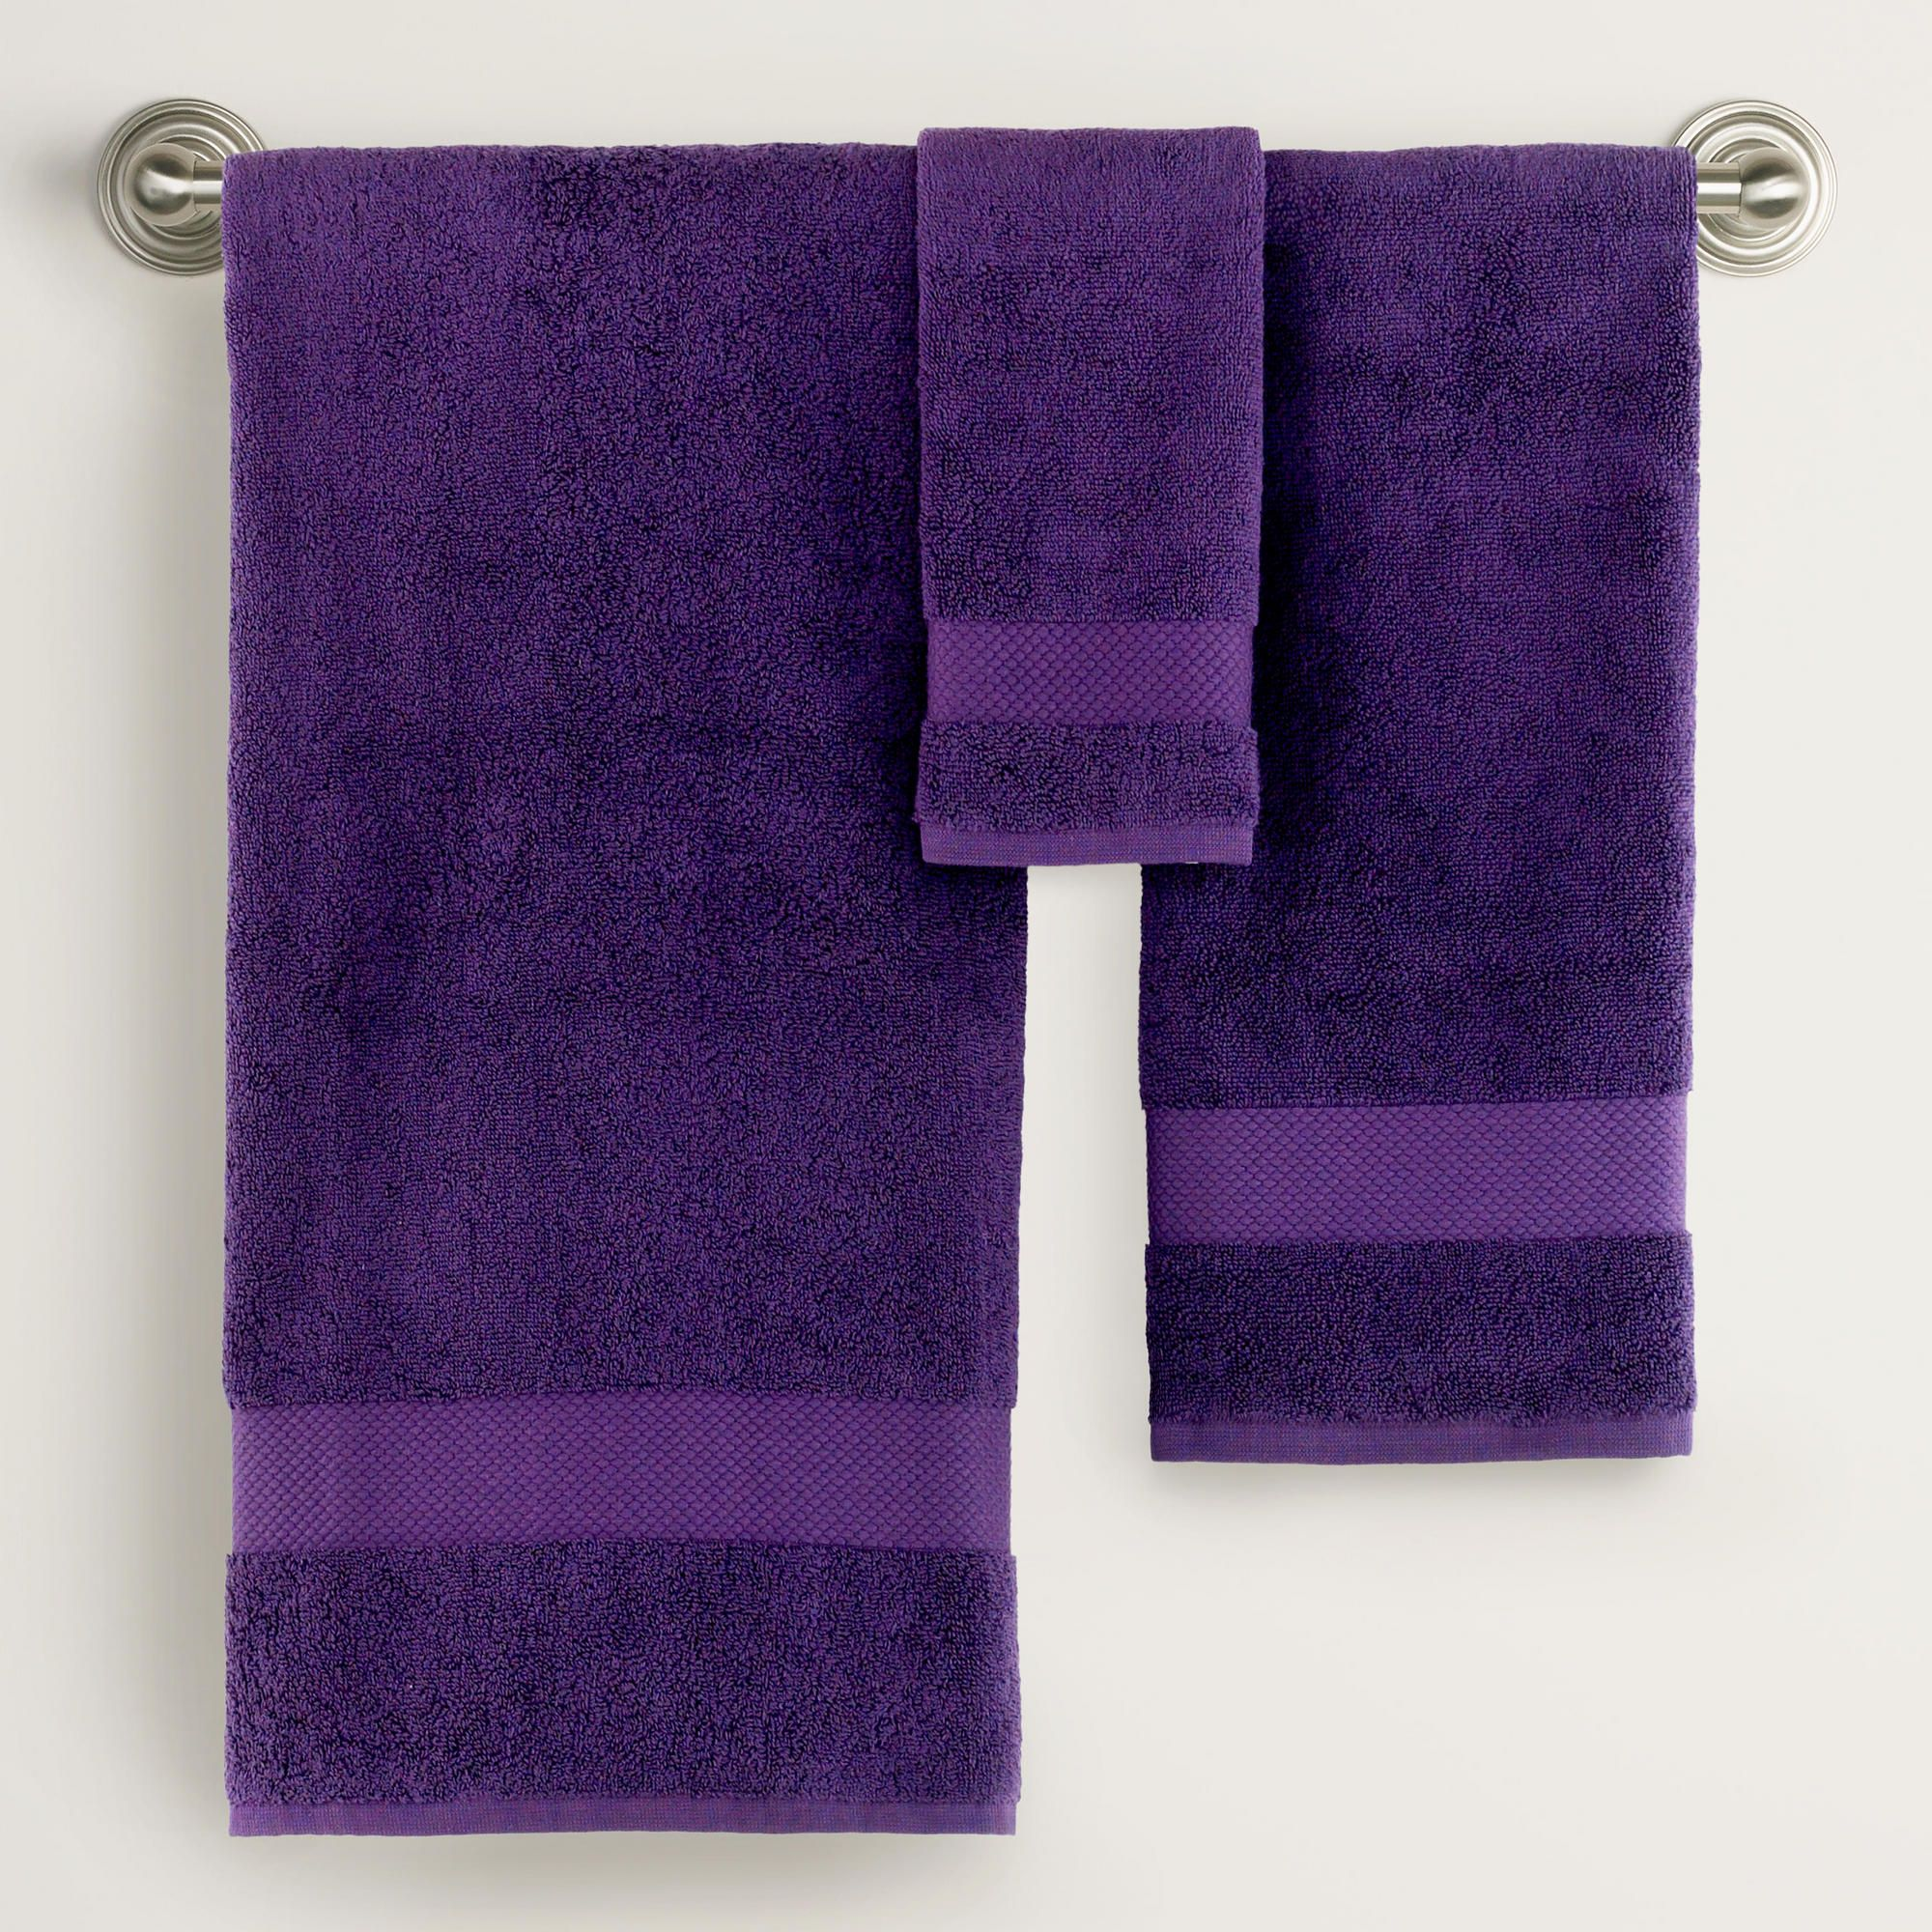 Images Of Bath Towels Cart 0 00 0 Decorative Bath Towels Purple Bath Towels Bath Towels